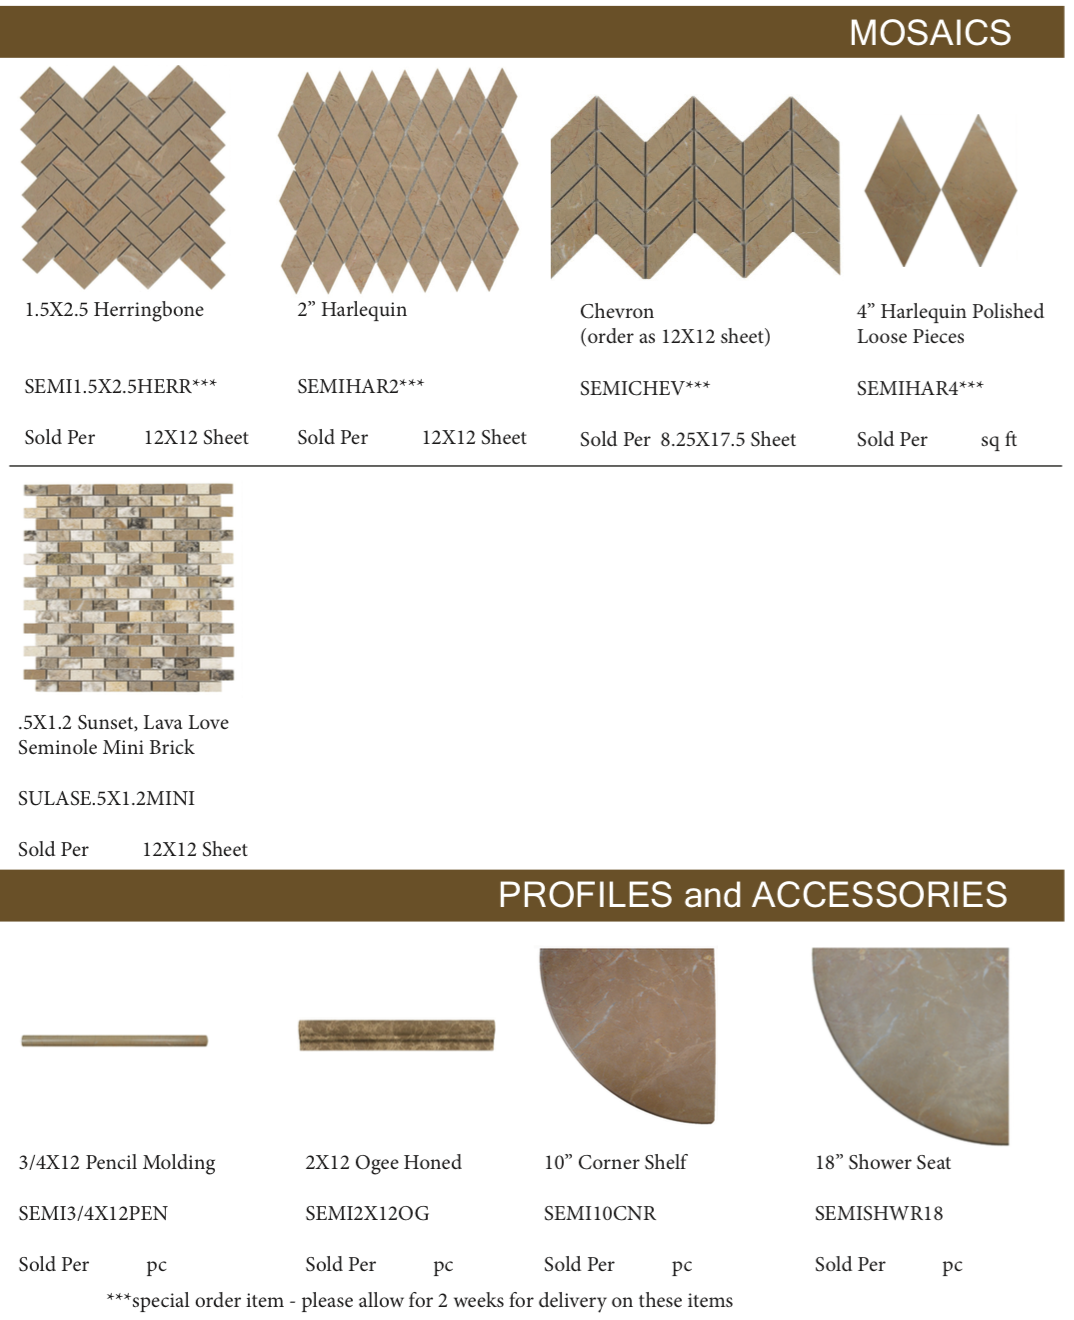 Seminole-Marble-Mosaics-Profiles-and-Accessories